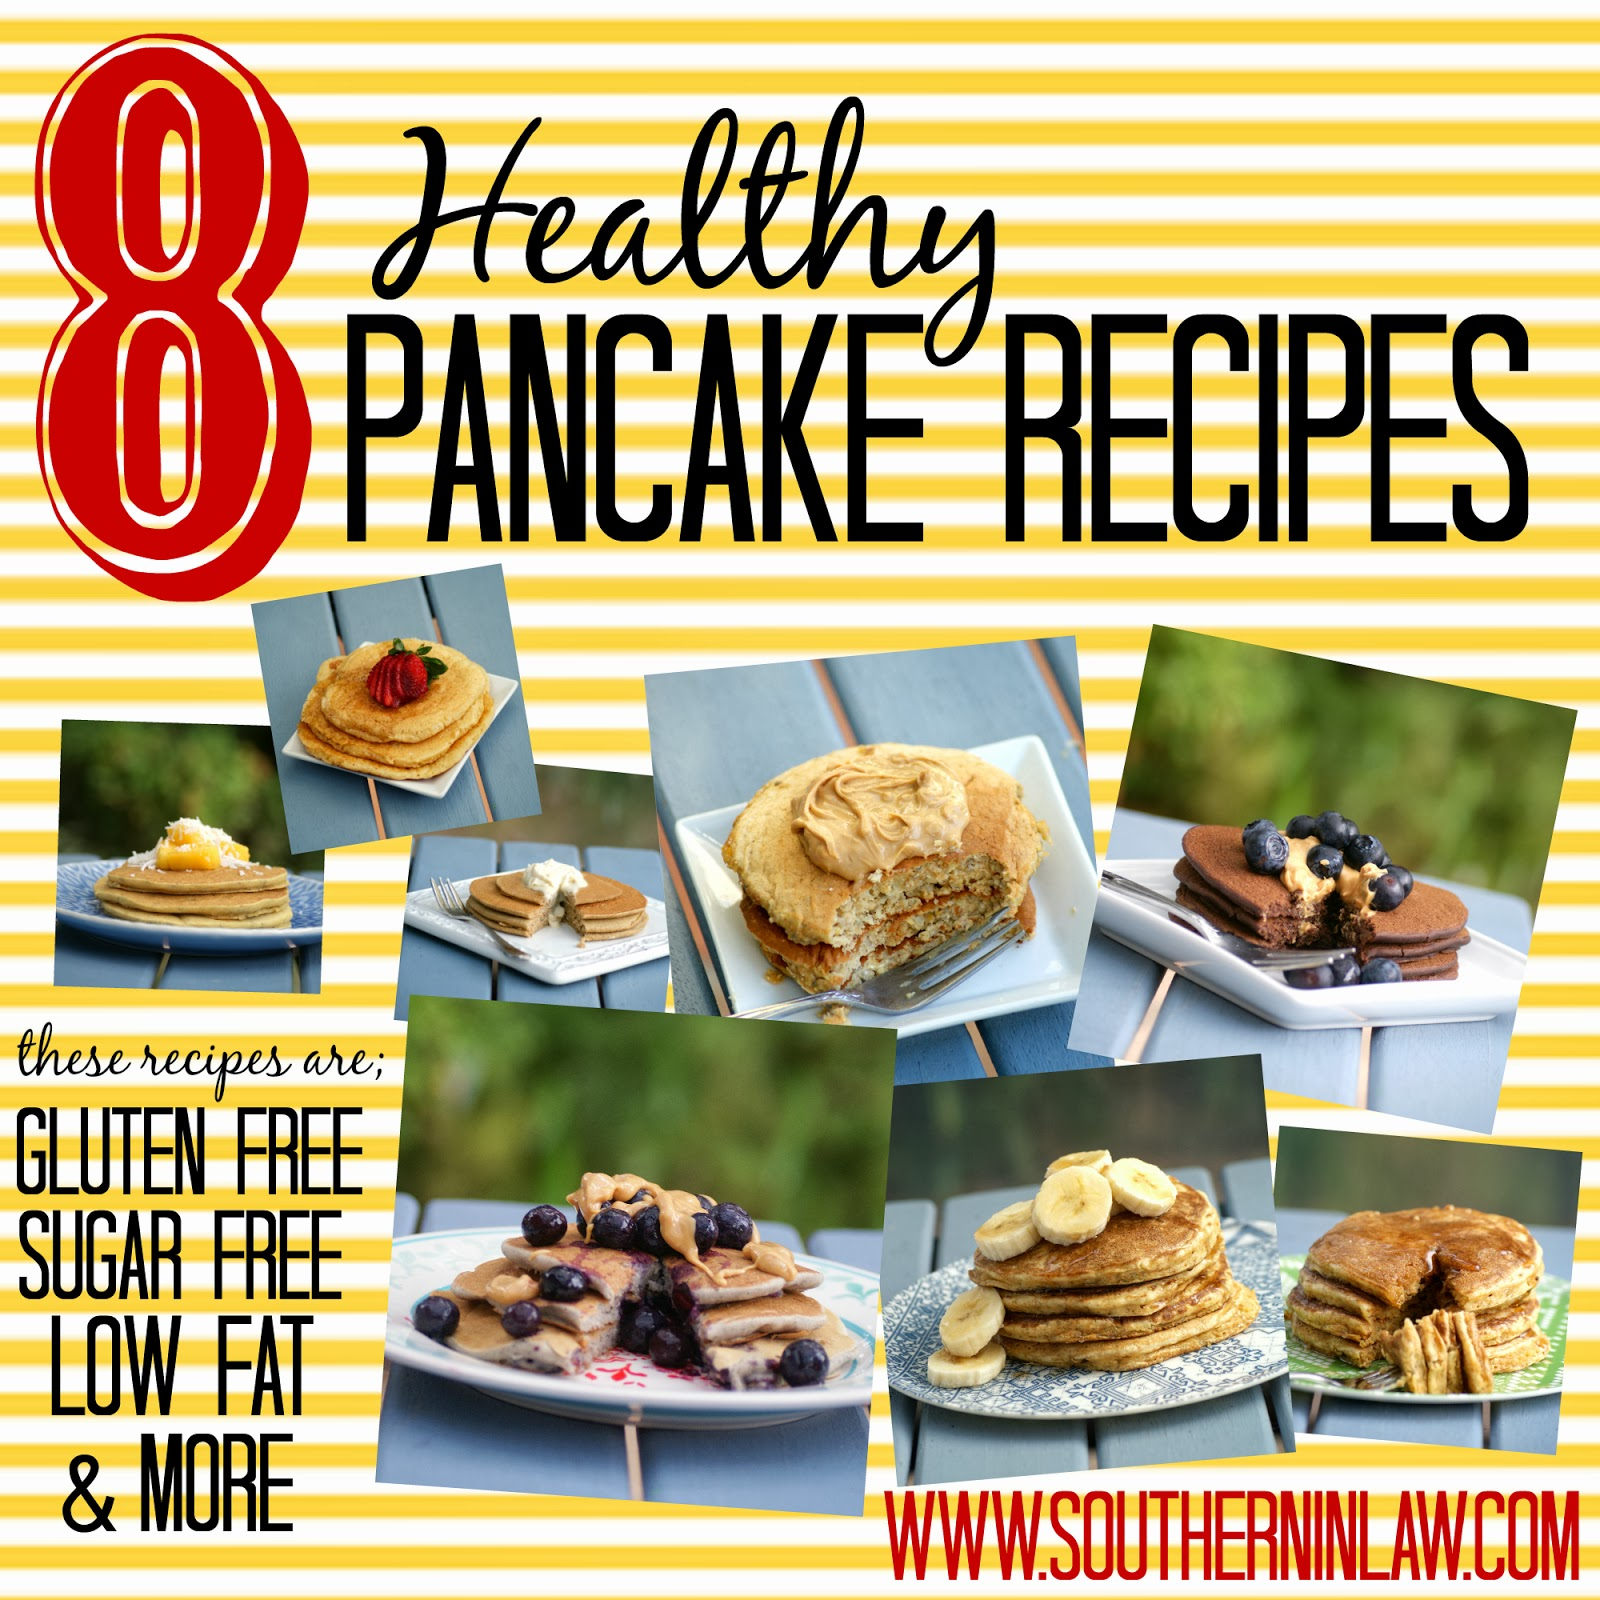 Healthy Pancake Recipes - Gluten Free, Sugar Free, Low Fat, Vegan, Clean Eating Friendly